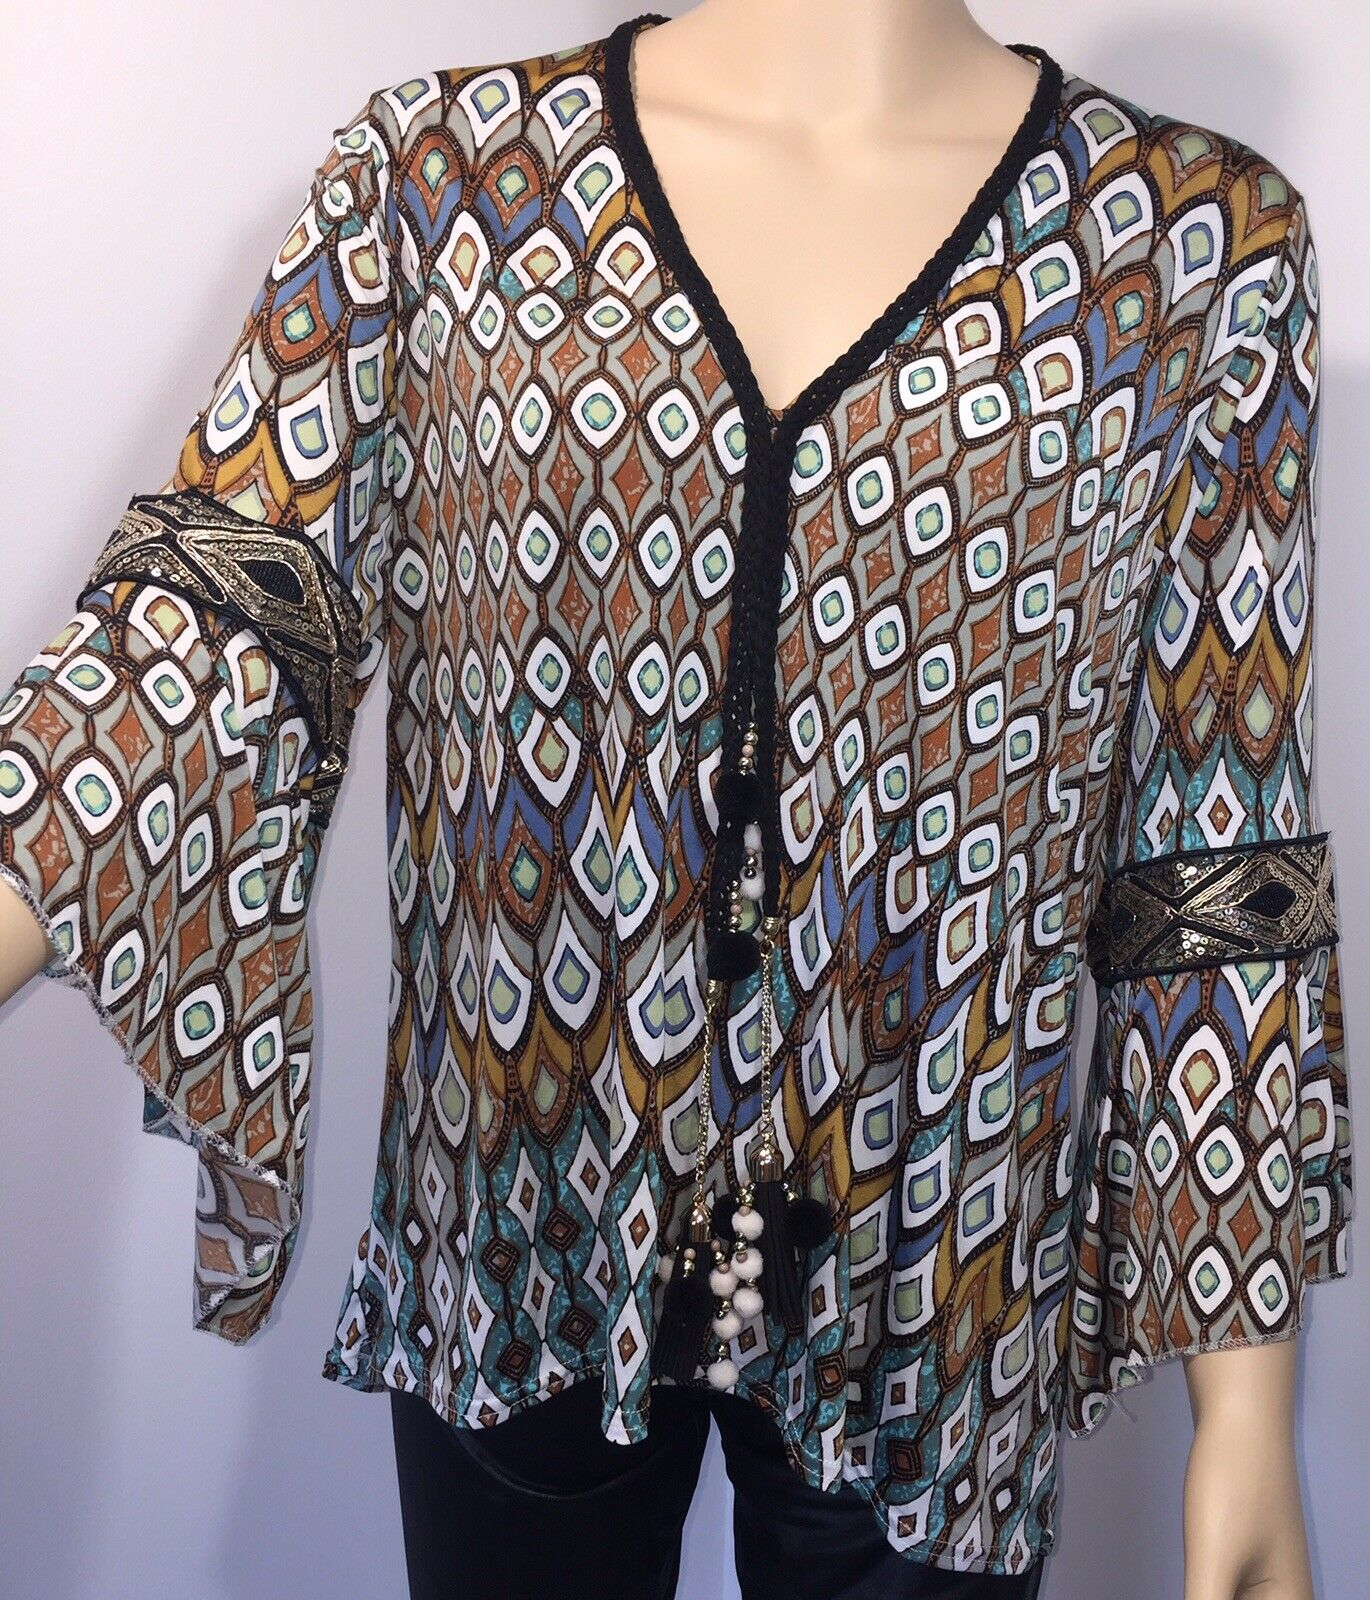 Stretchy Tunic Top Bell Sleeves Sequins Tassels Softest Feel Cool One Size NEW